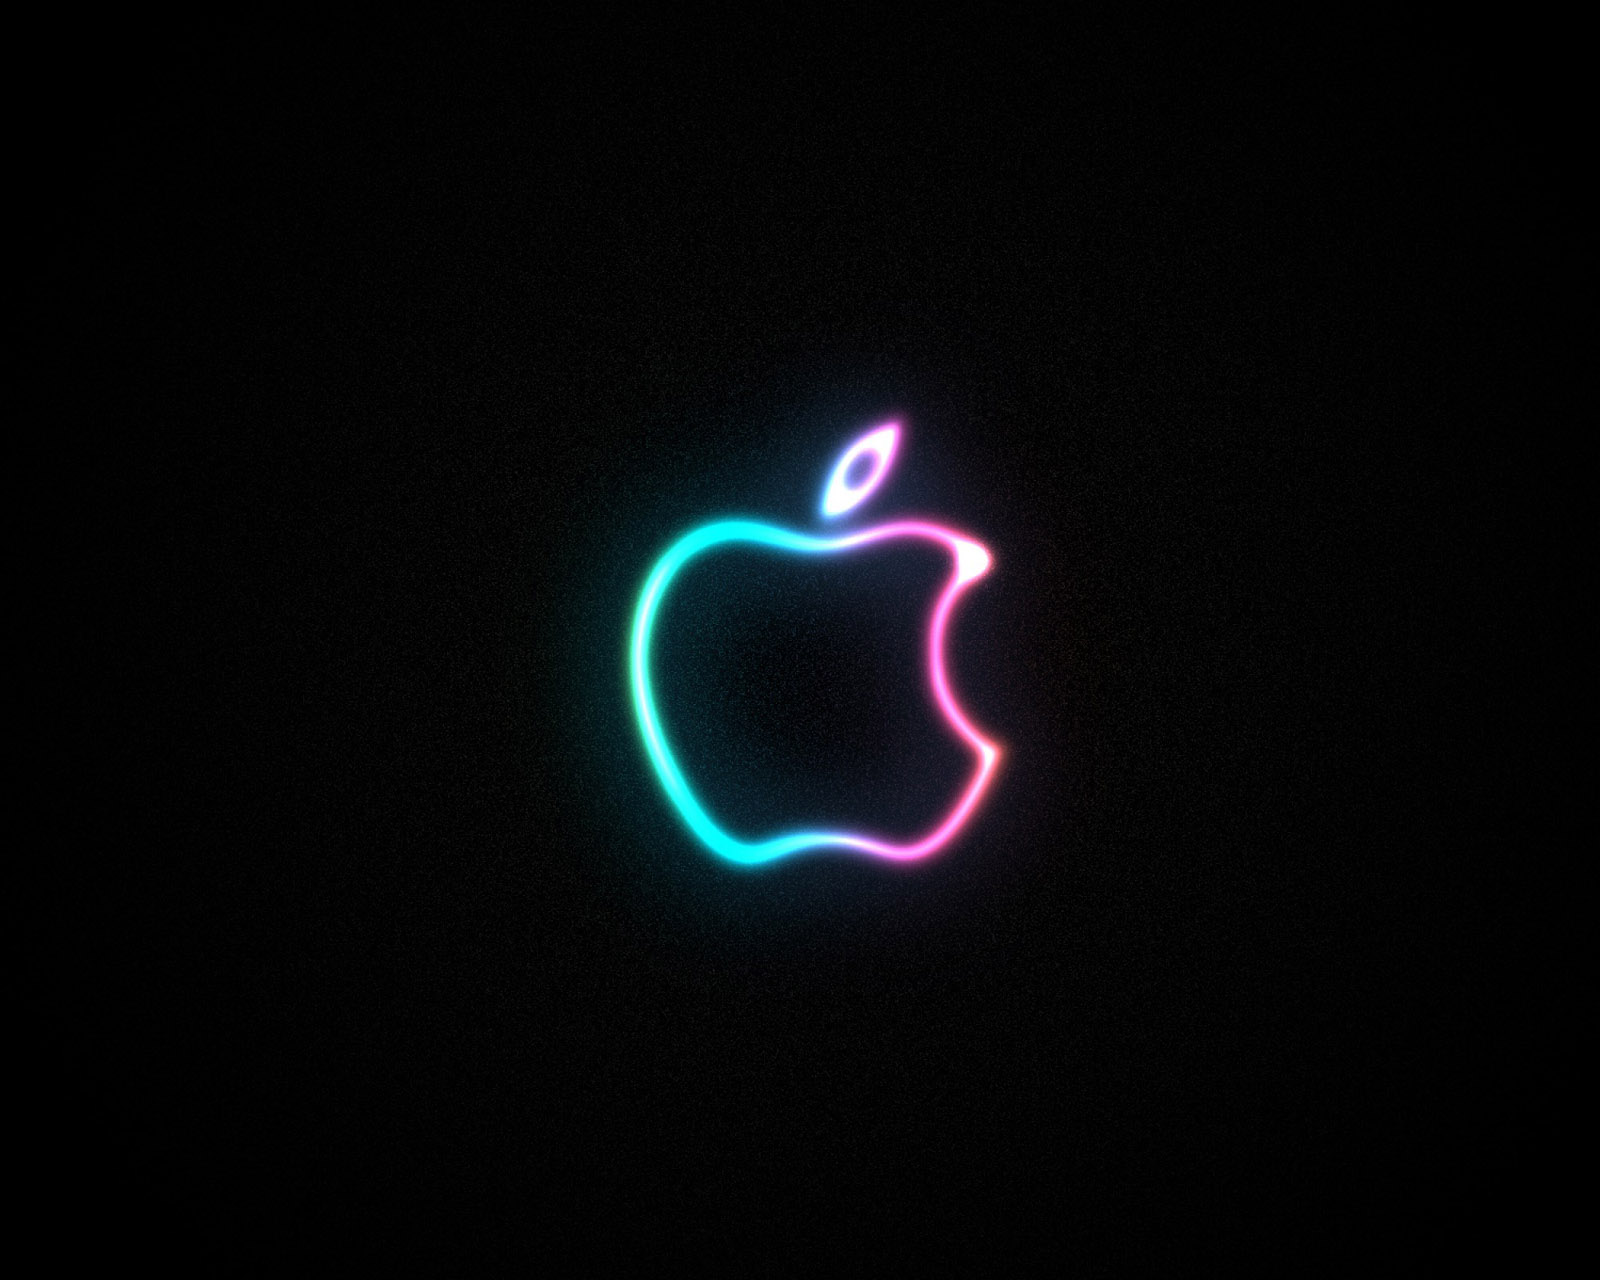 Apple Logo Hd Wallpapers For Iphone 1920 1080 Apple Logo: Downloadwallpaper.org